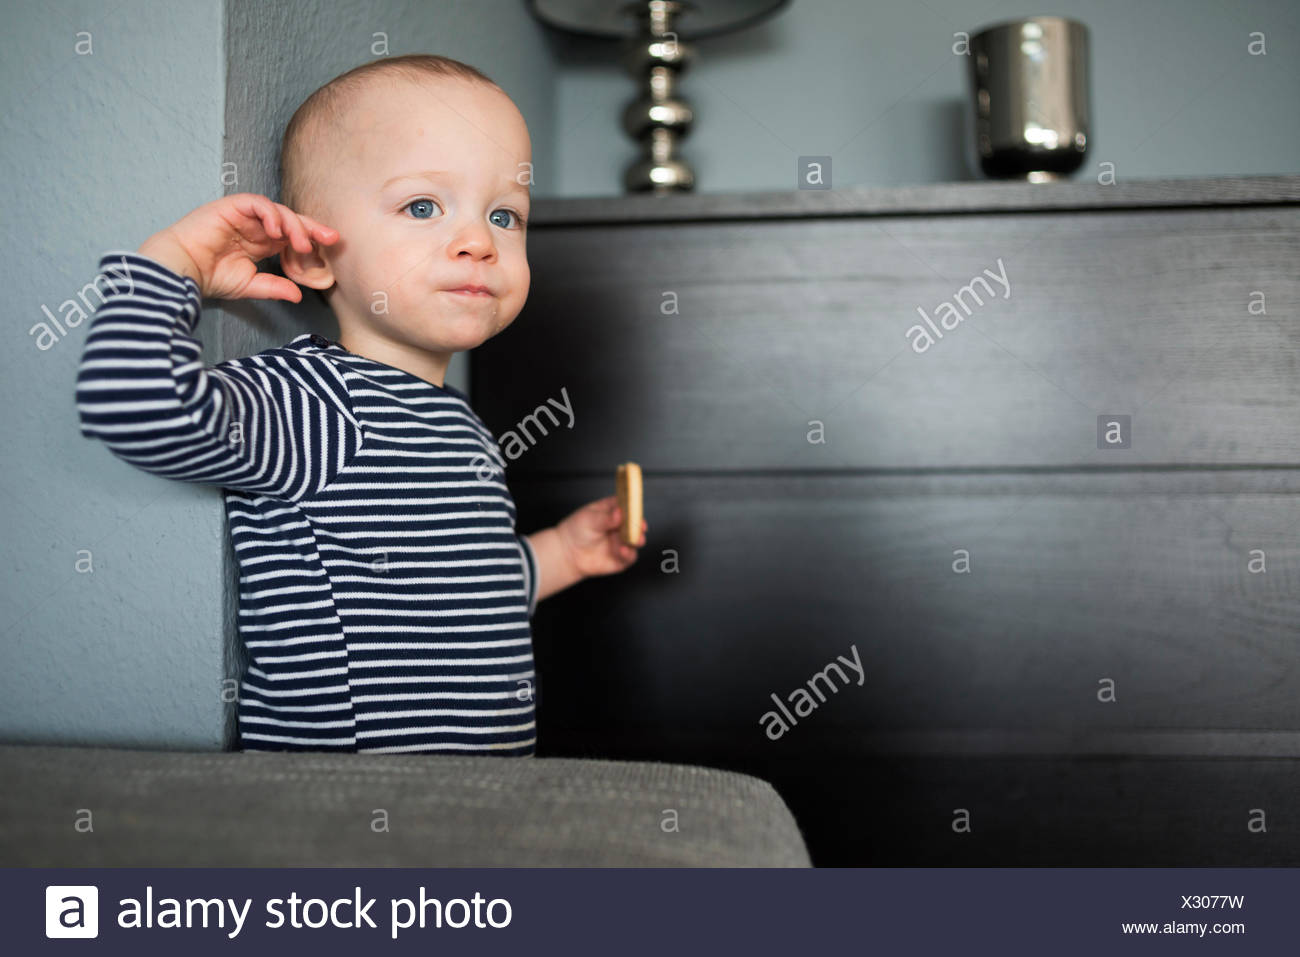 Baby boy eating biscuit in living room - Stock Image